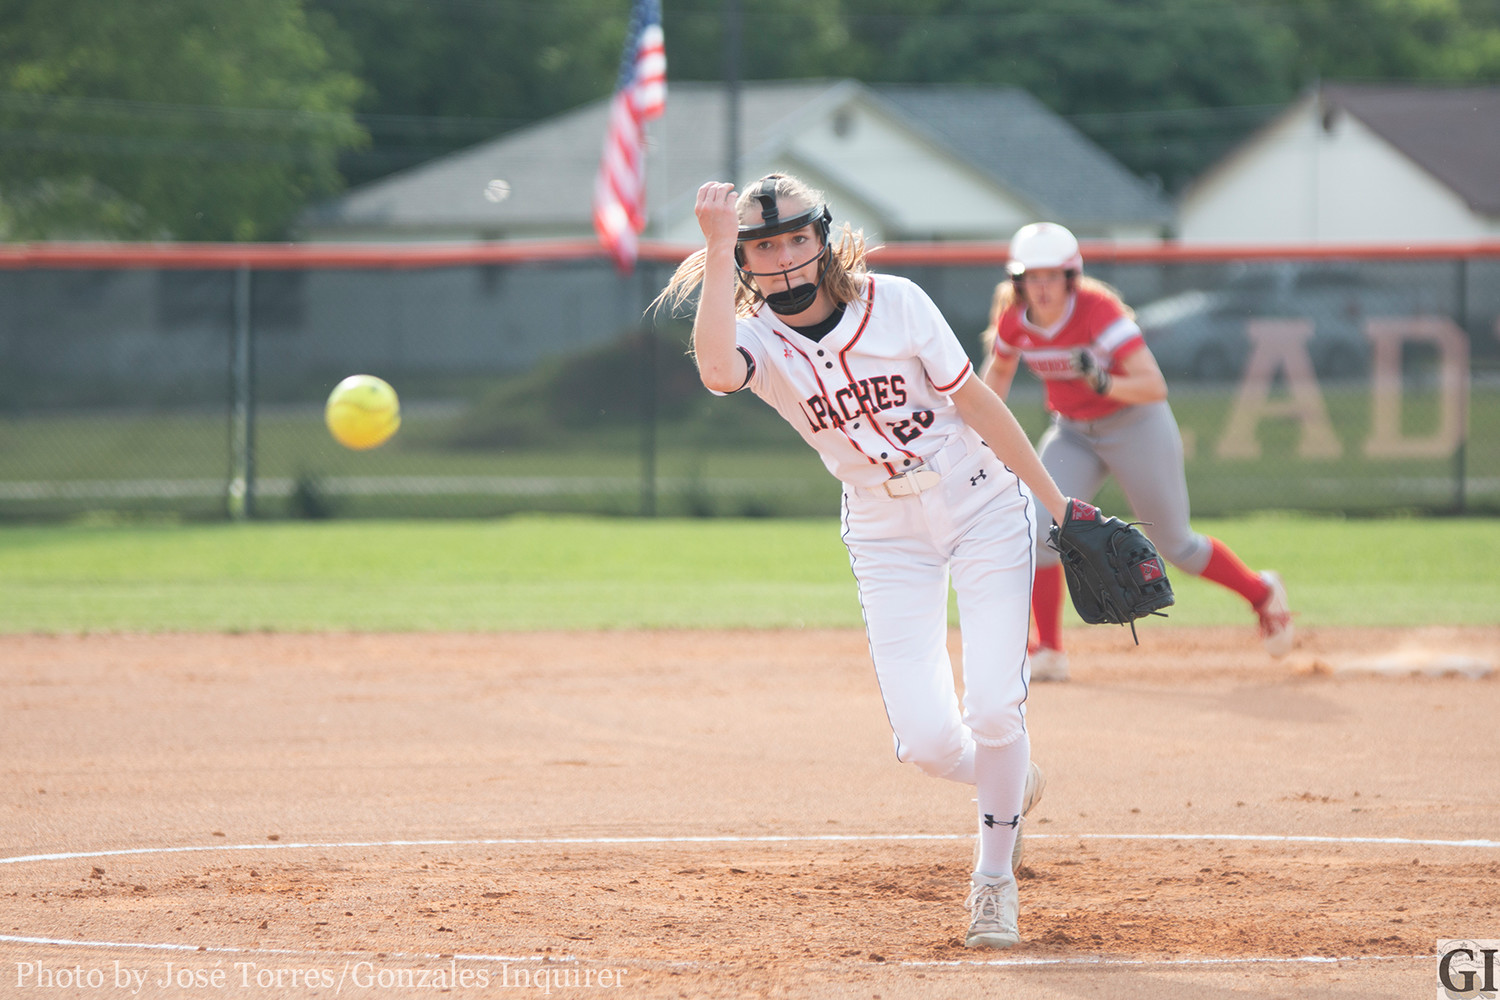 Freshman Shelby Davis took to the mound Friday, pitching four innings in a 12-0 loss to Fredericksburg.